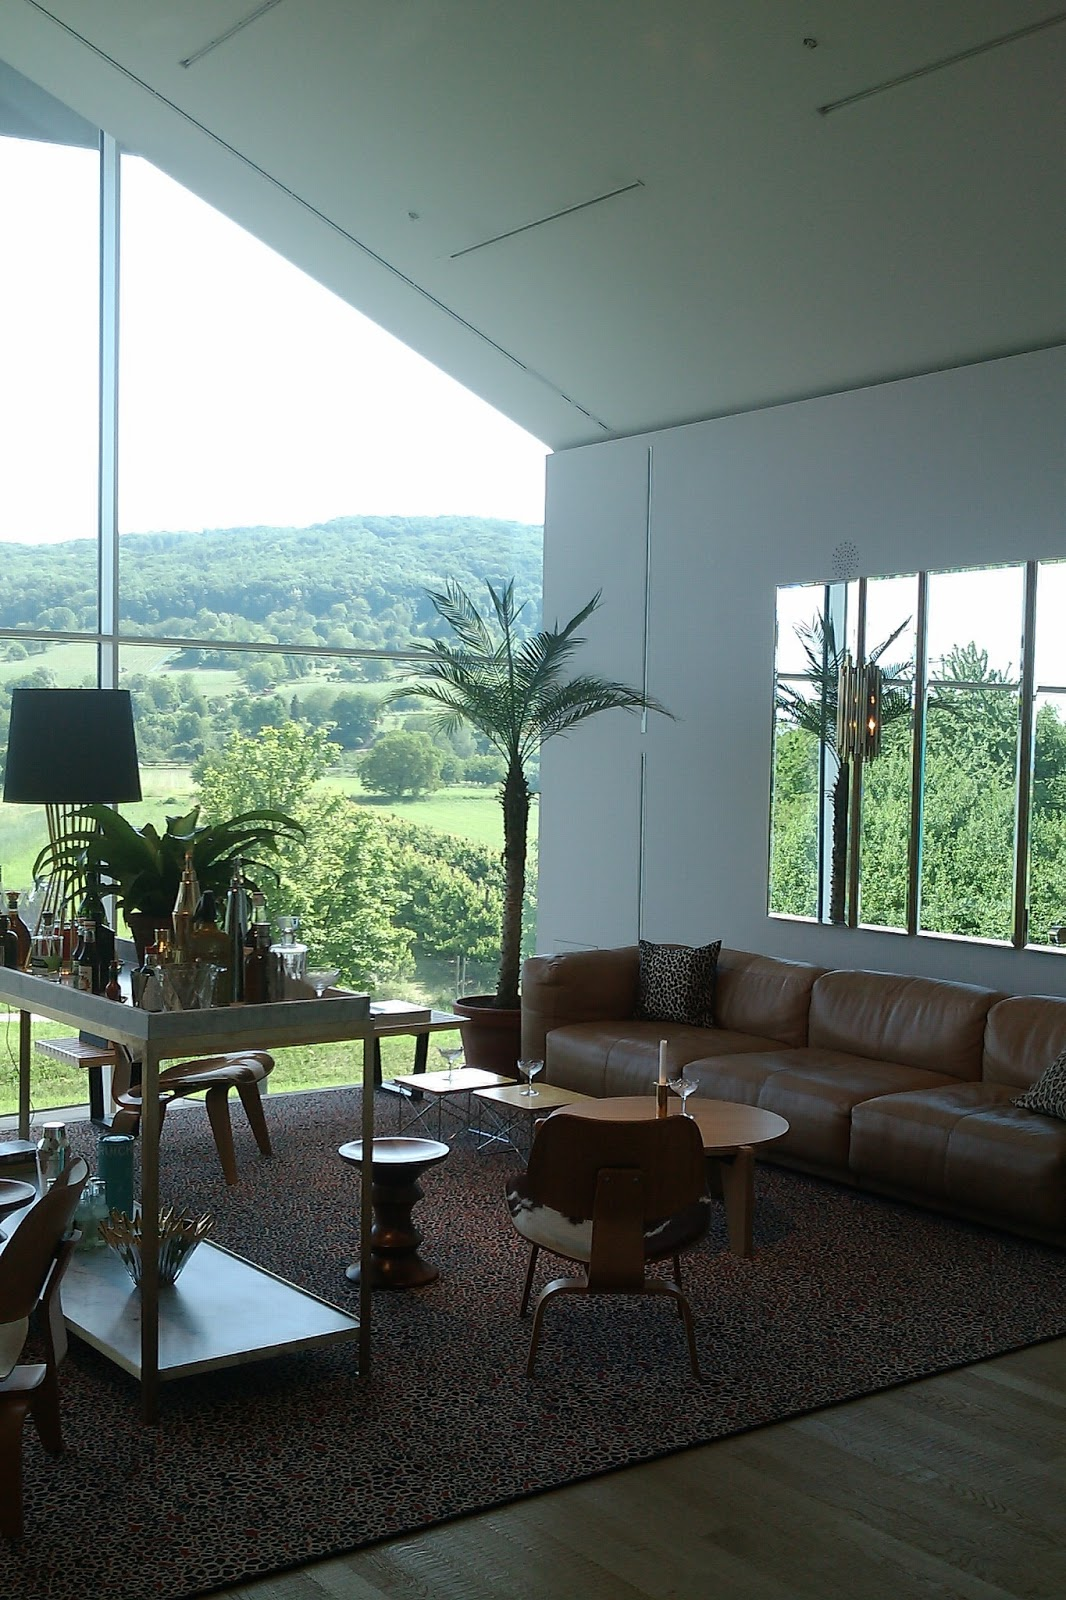 365 jours avec mon pass mus es vitra design museum weil am rhein allemagne. Black Bedroom Furniture Sets. Home Design Ideas